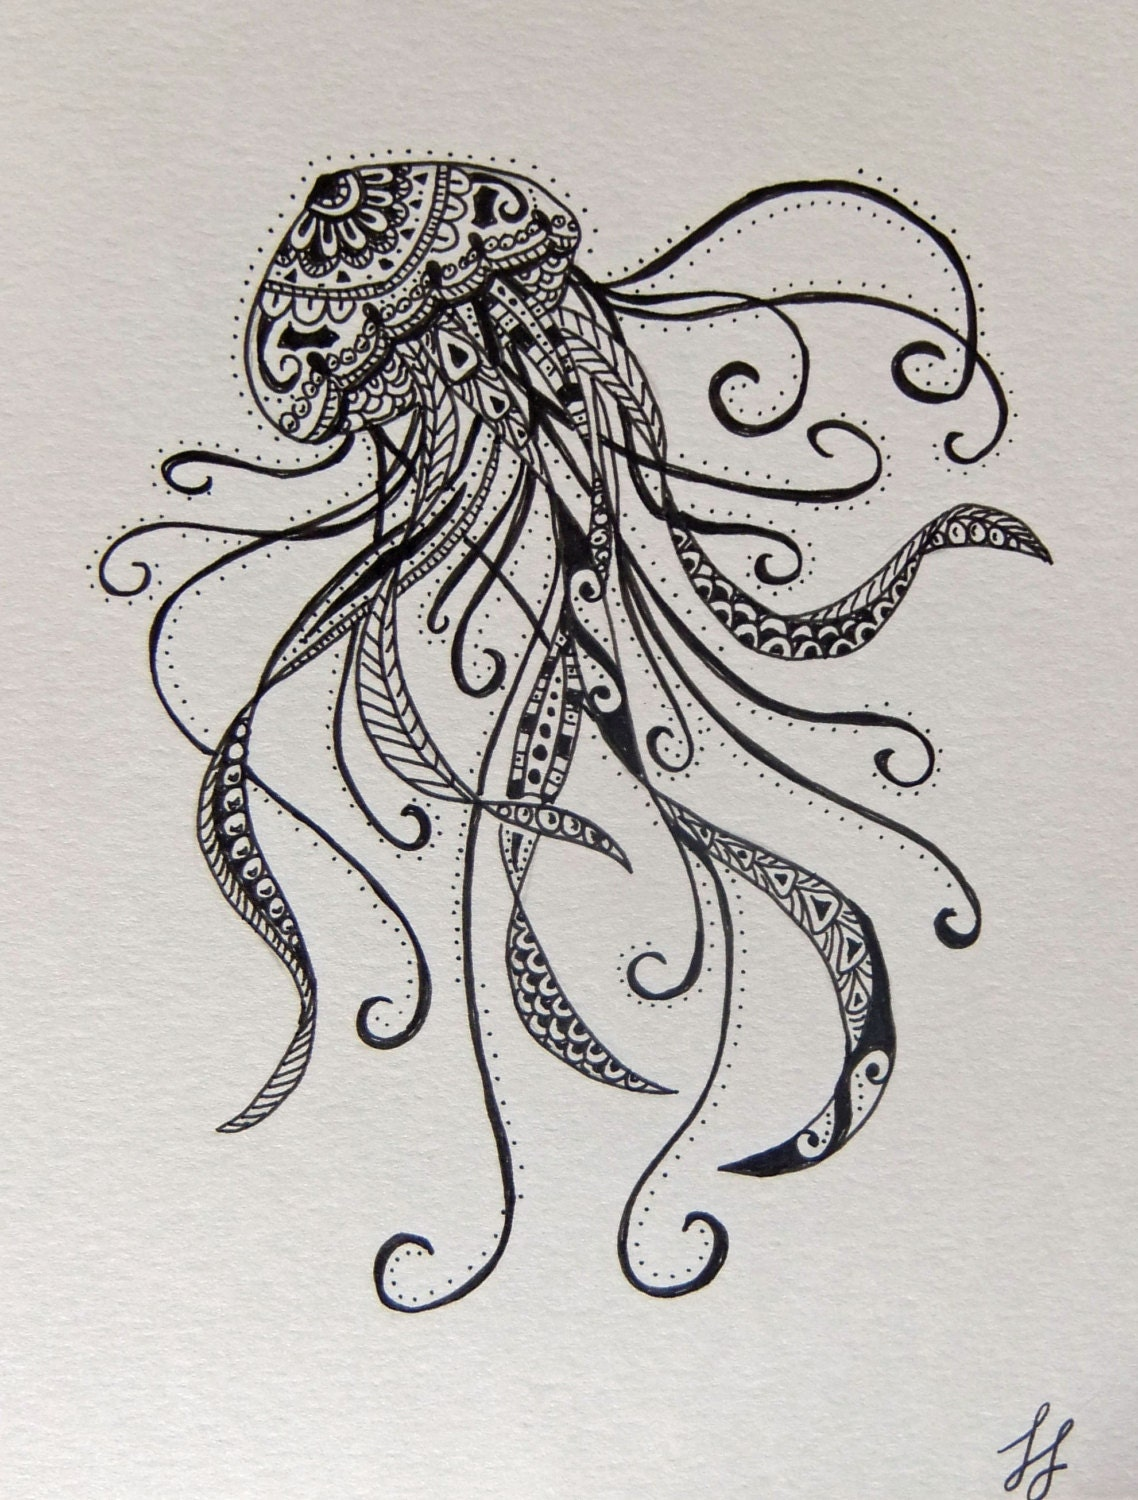 Items similar to Jellyfish Zentangle Style Drawing on Etsy